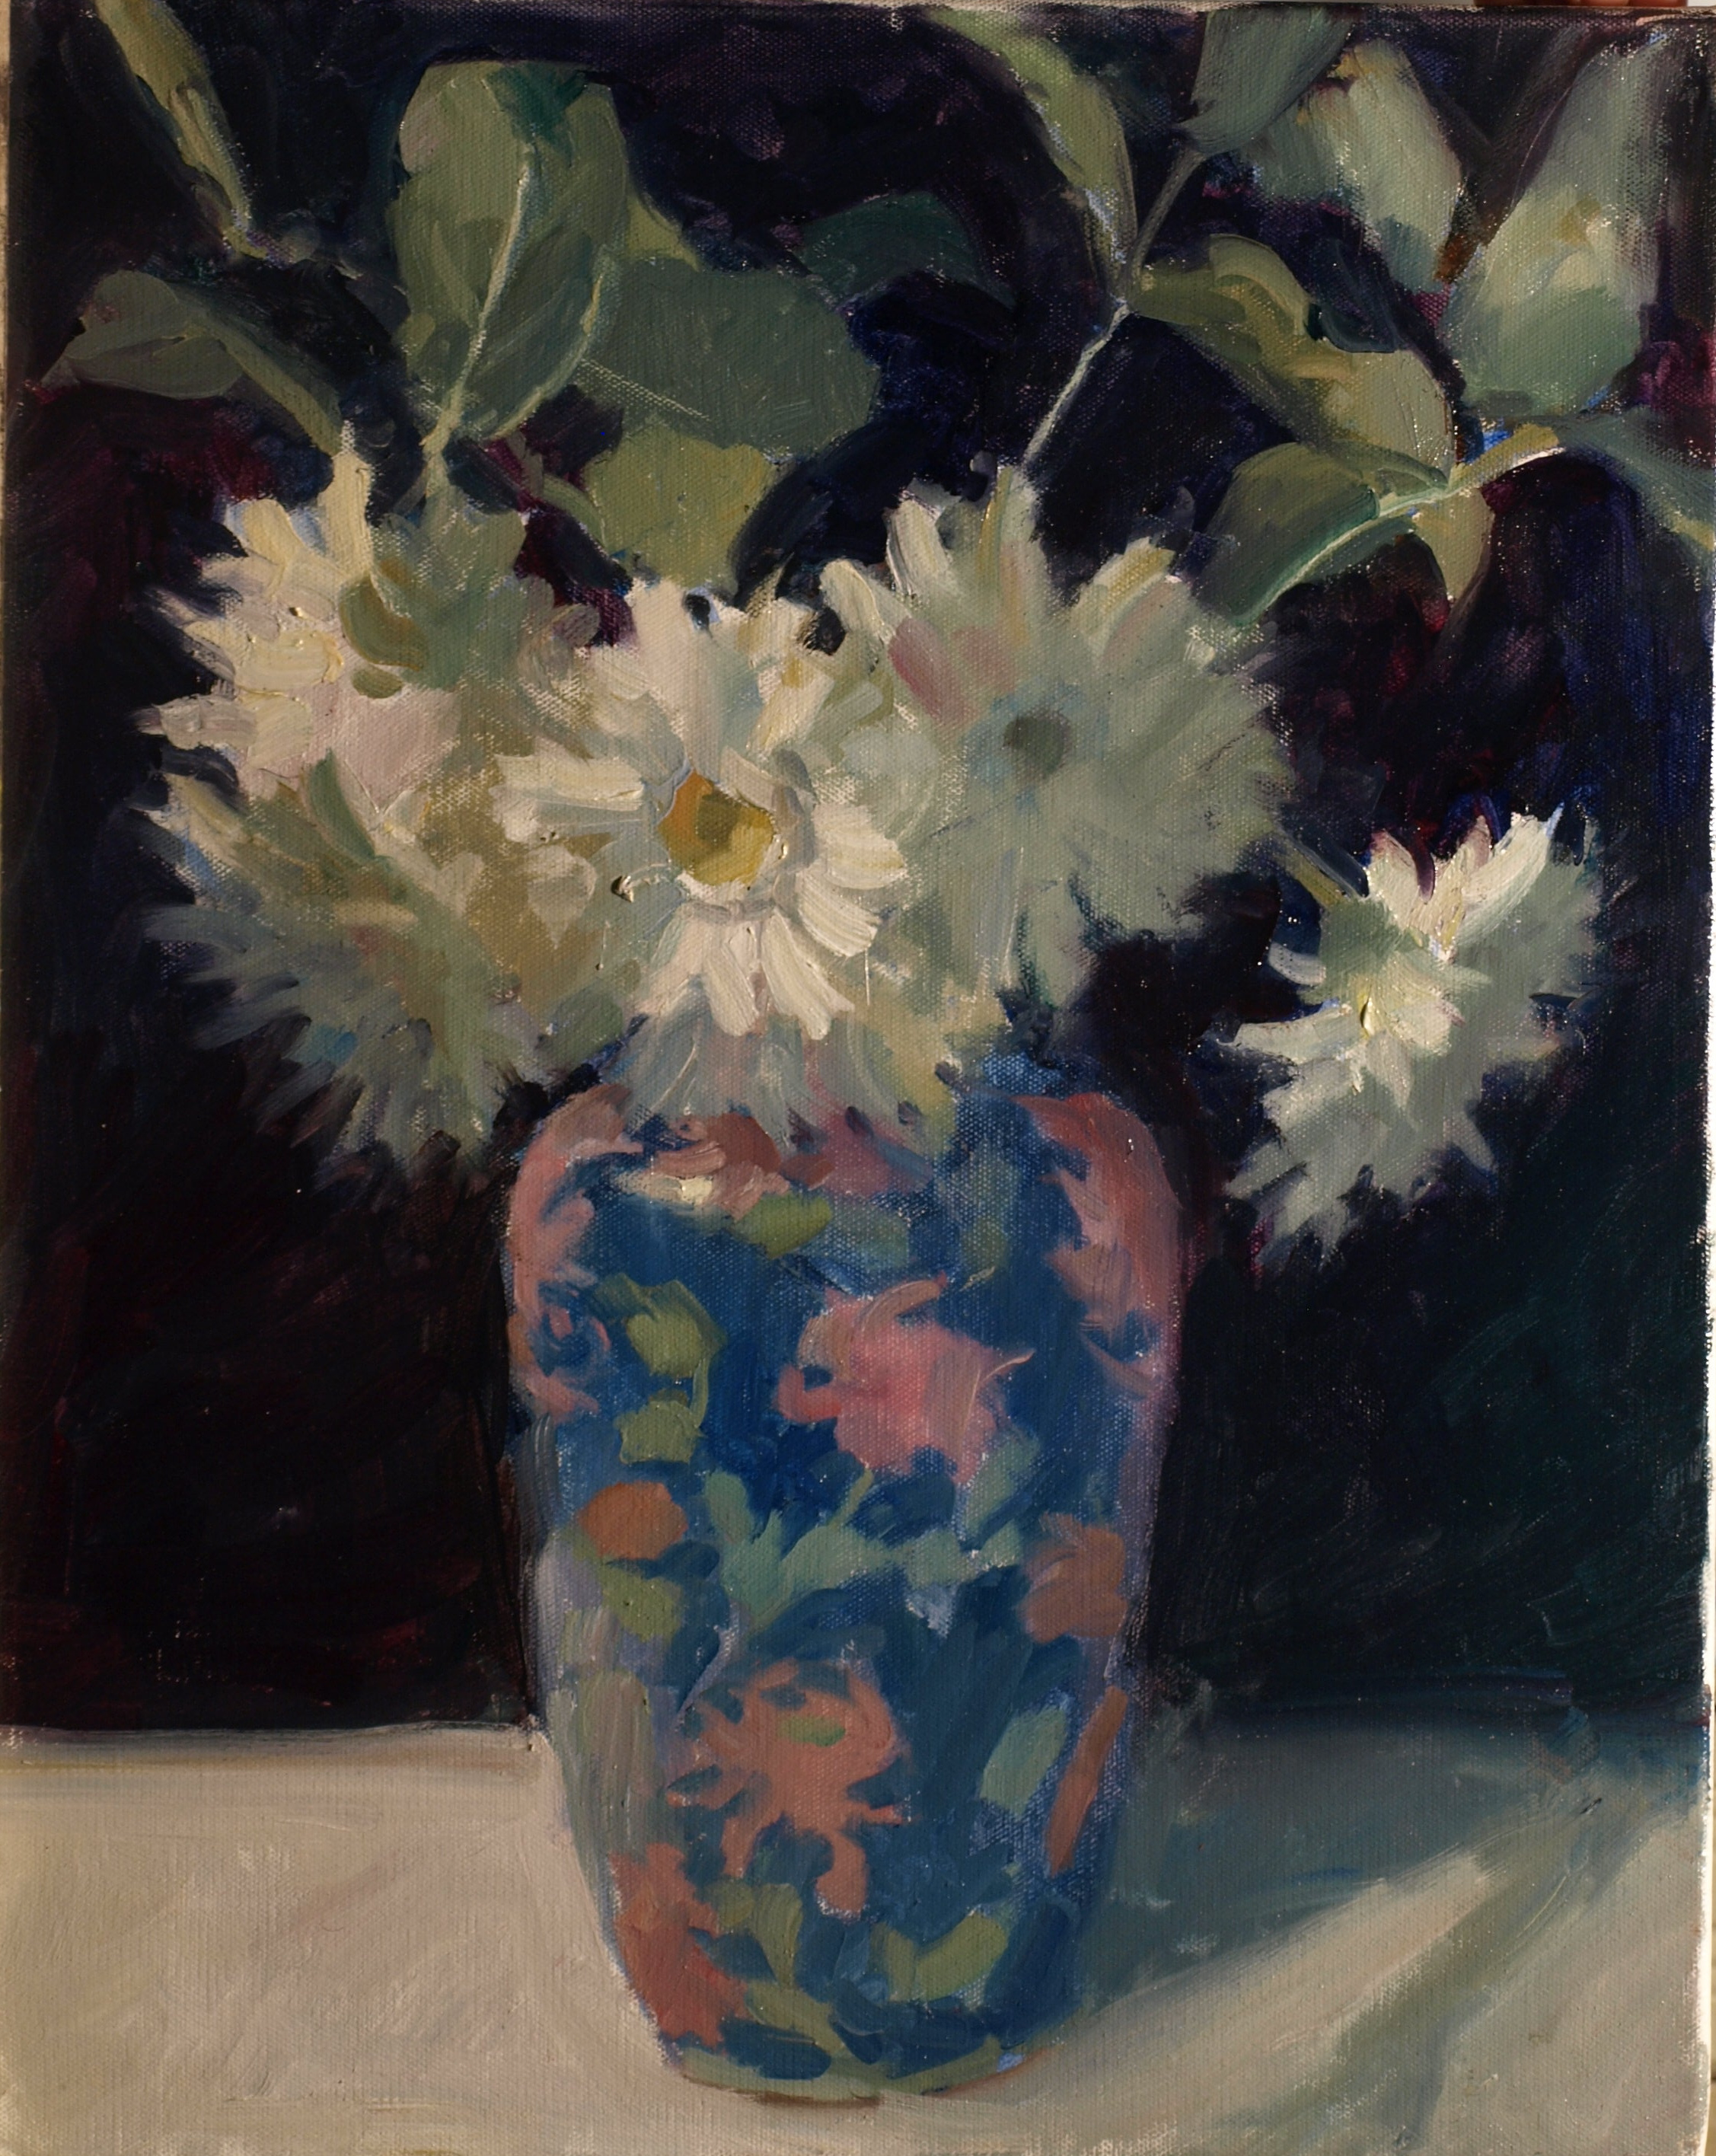 White Mums, Oil on Canvas, 20 x 16 Inches, by Susan Grisell, $550